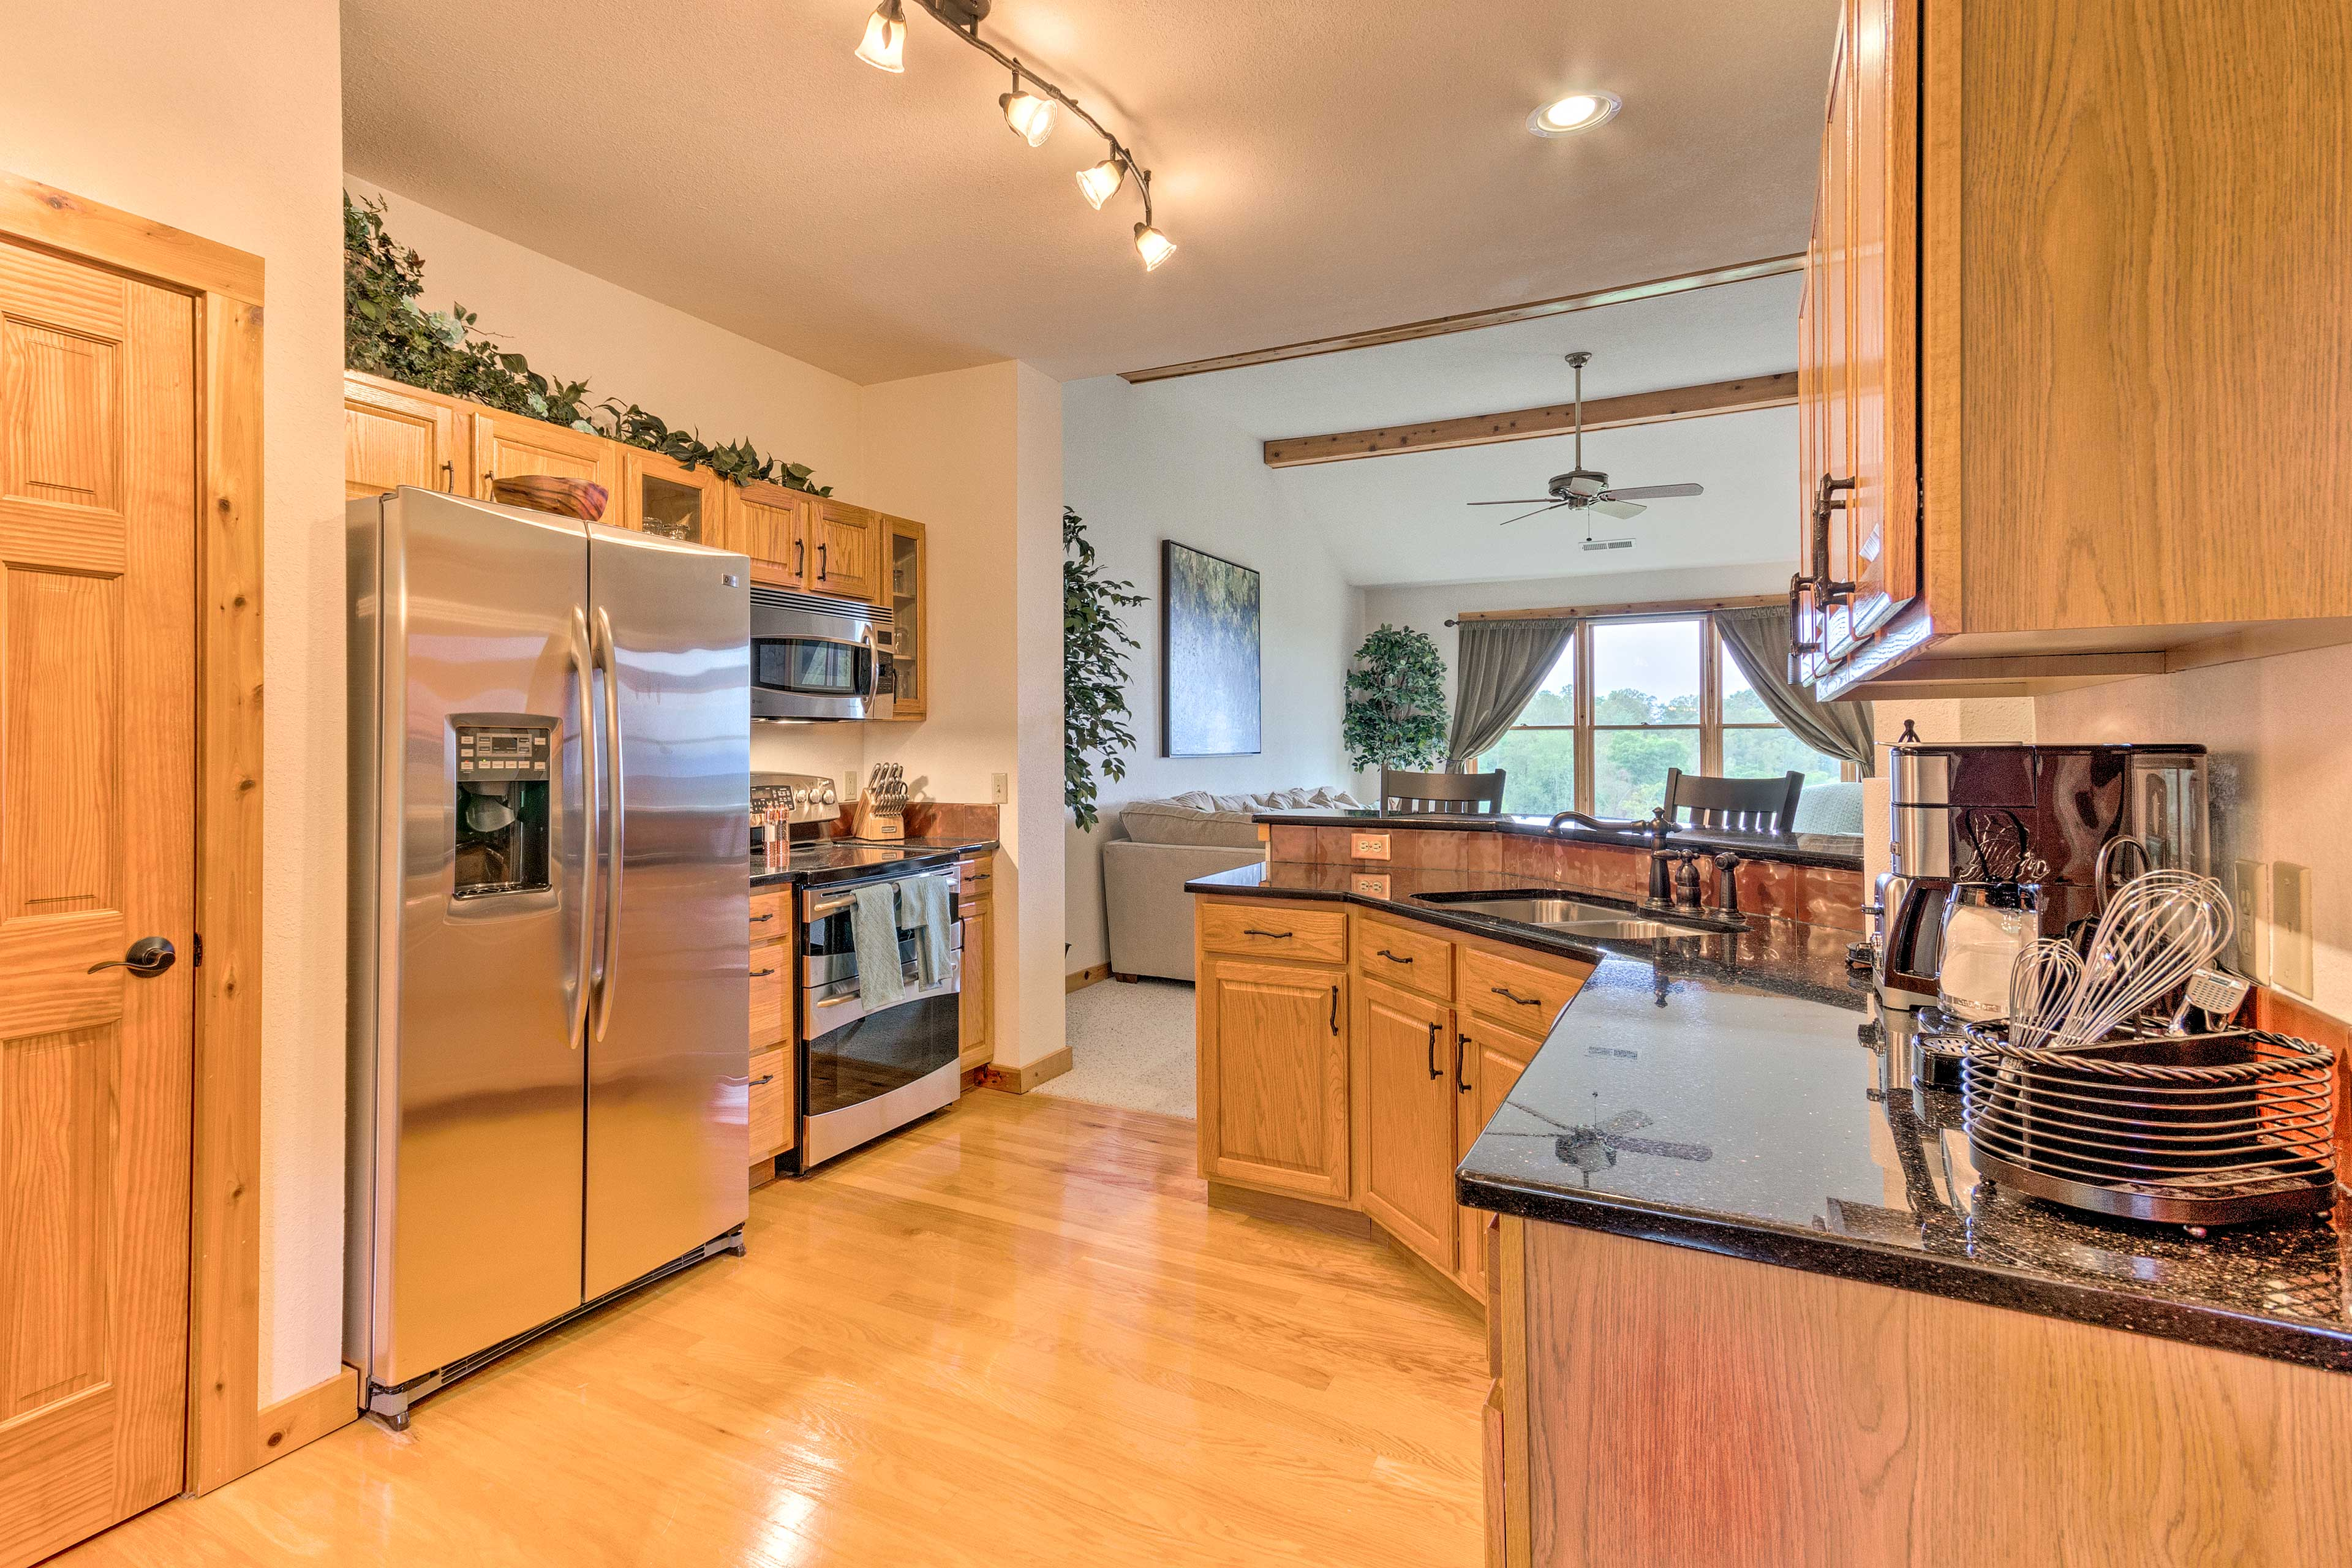 The kitchen is equipped with a full knife set, a spice rack, and coffee maker.